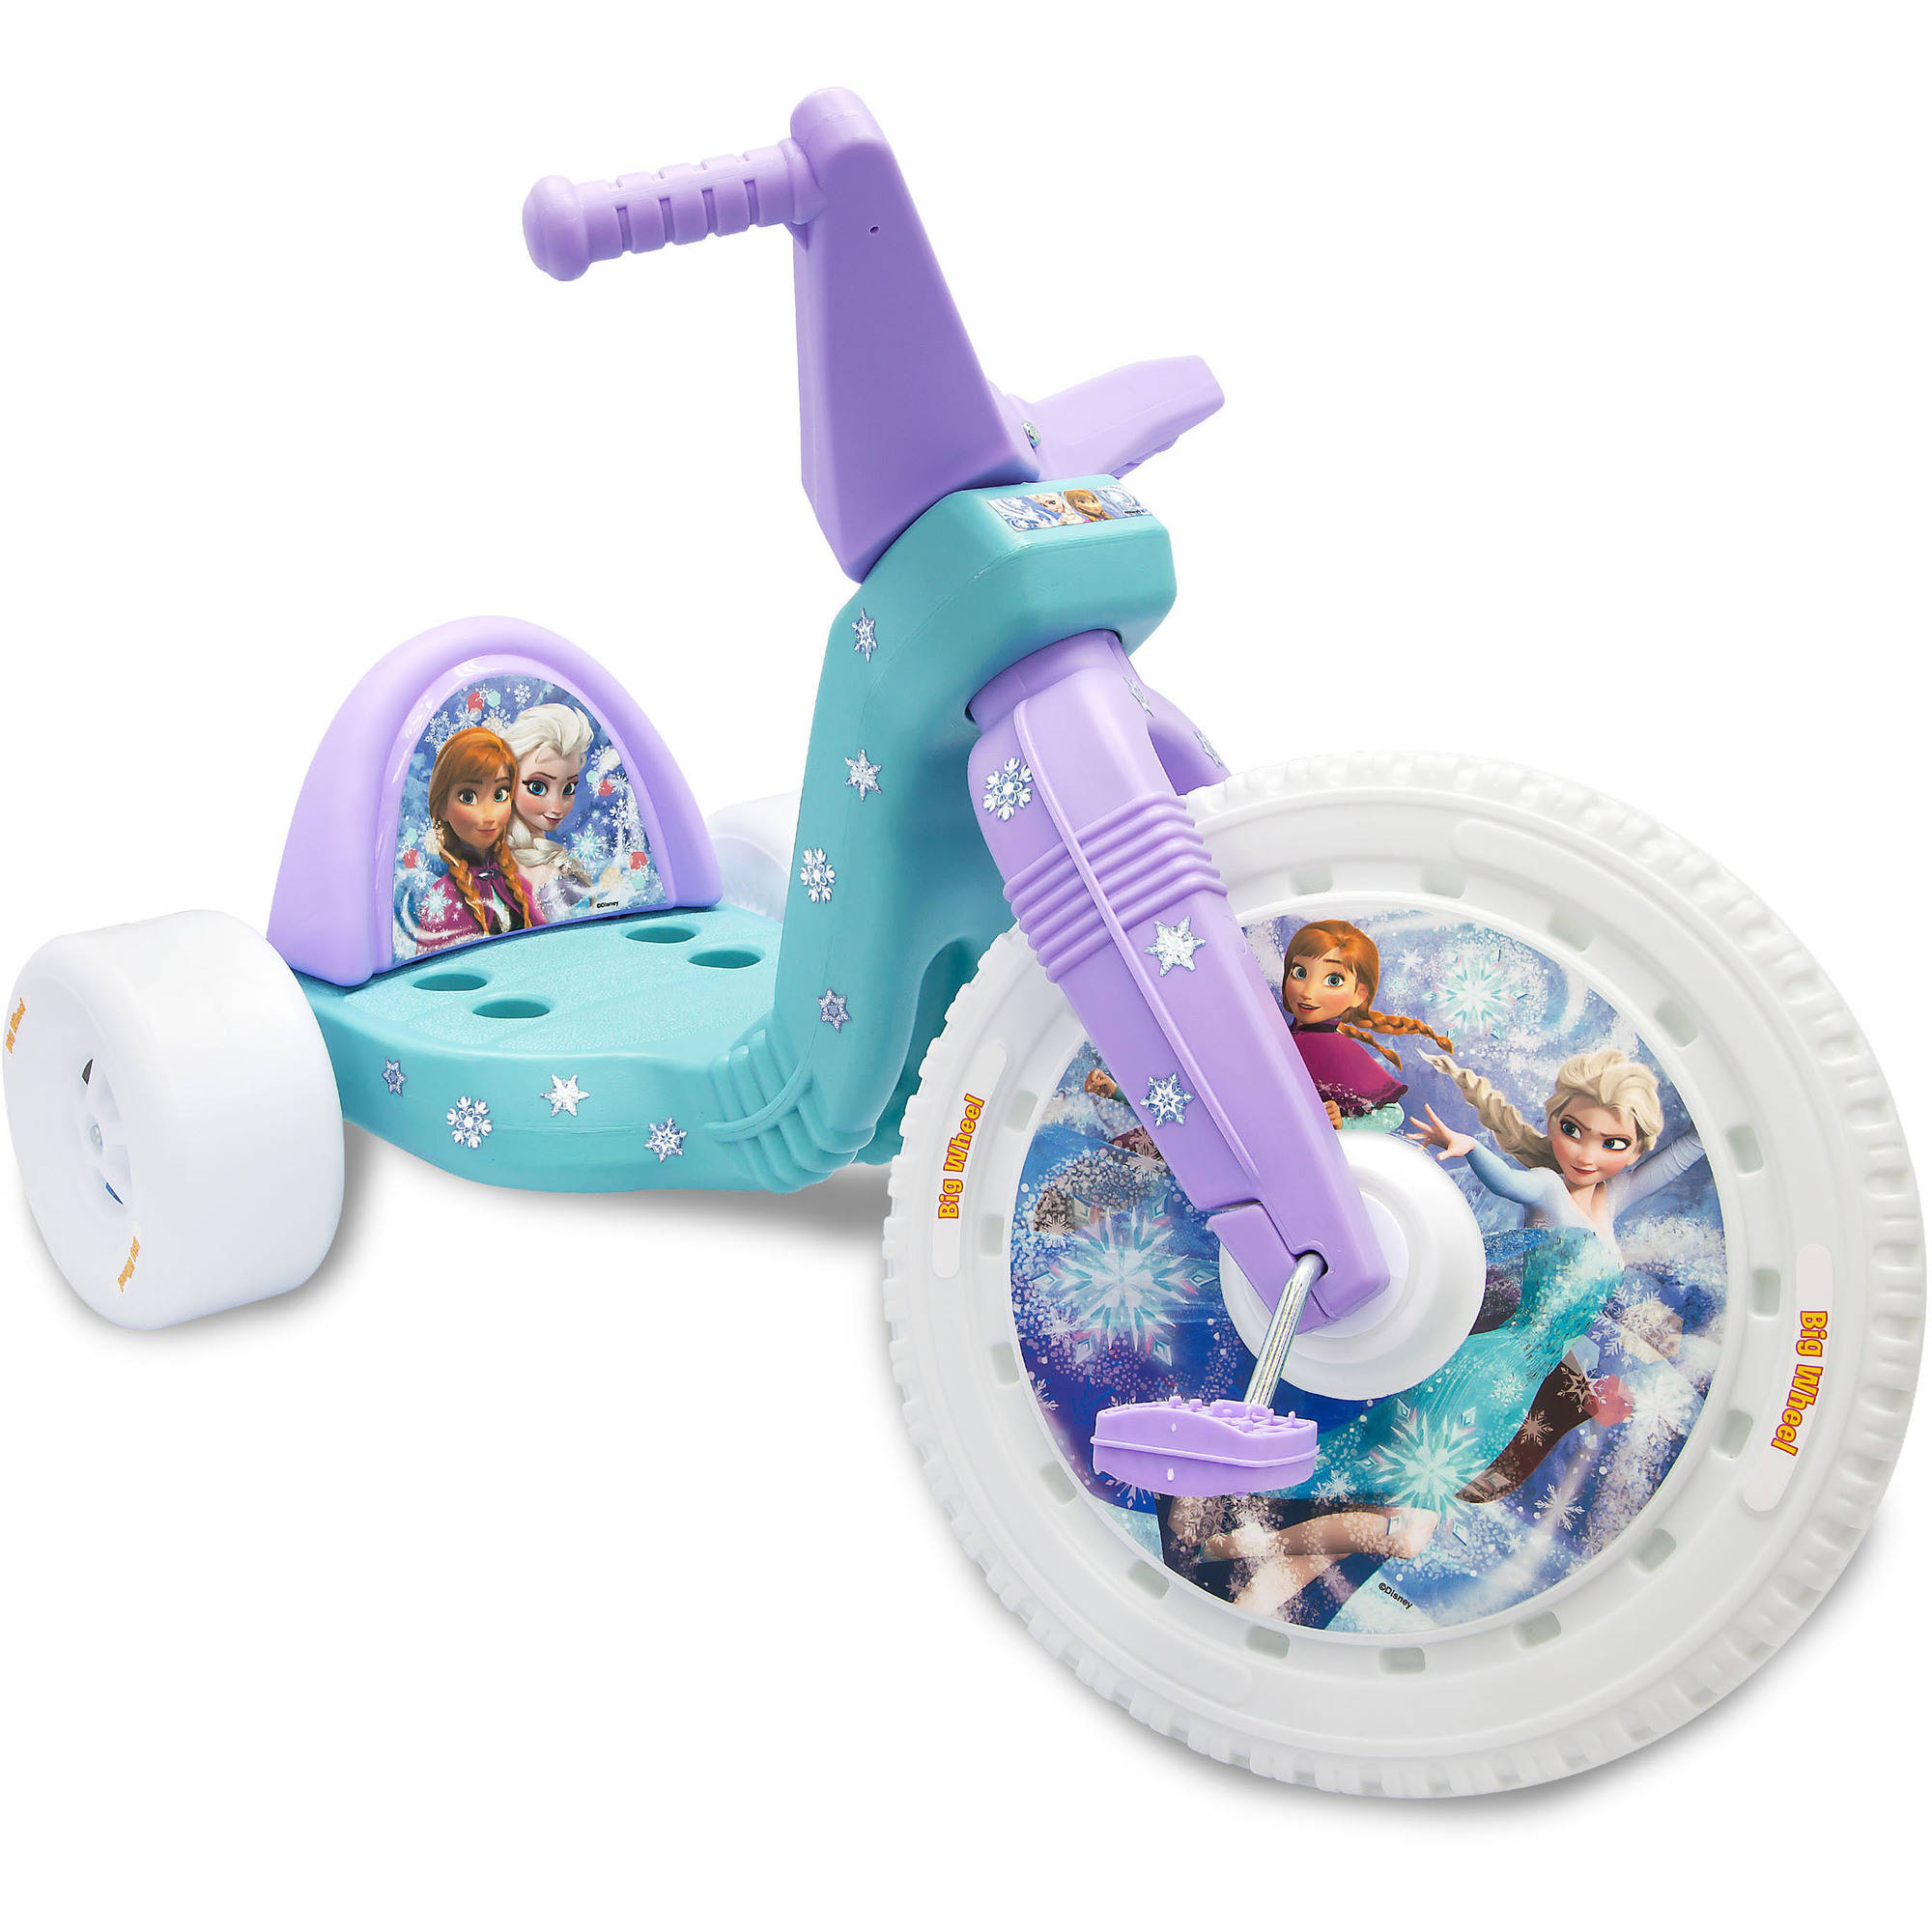 Toys For Boys & Girls - Buy Kids Toys from Myntra Online Toy Store at best price in India. Shop for remote control toys, soft toy, dolls, Lego sets, board games, learning and development games and more toys for kids online. Top brands like Funskool, Hasbro, Mattel, Softbuddies, etc.